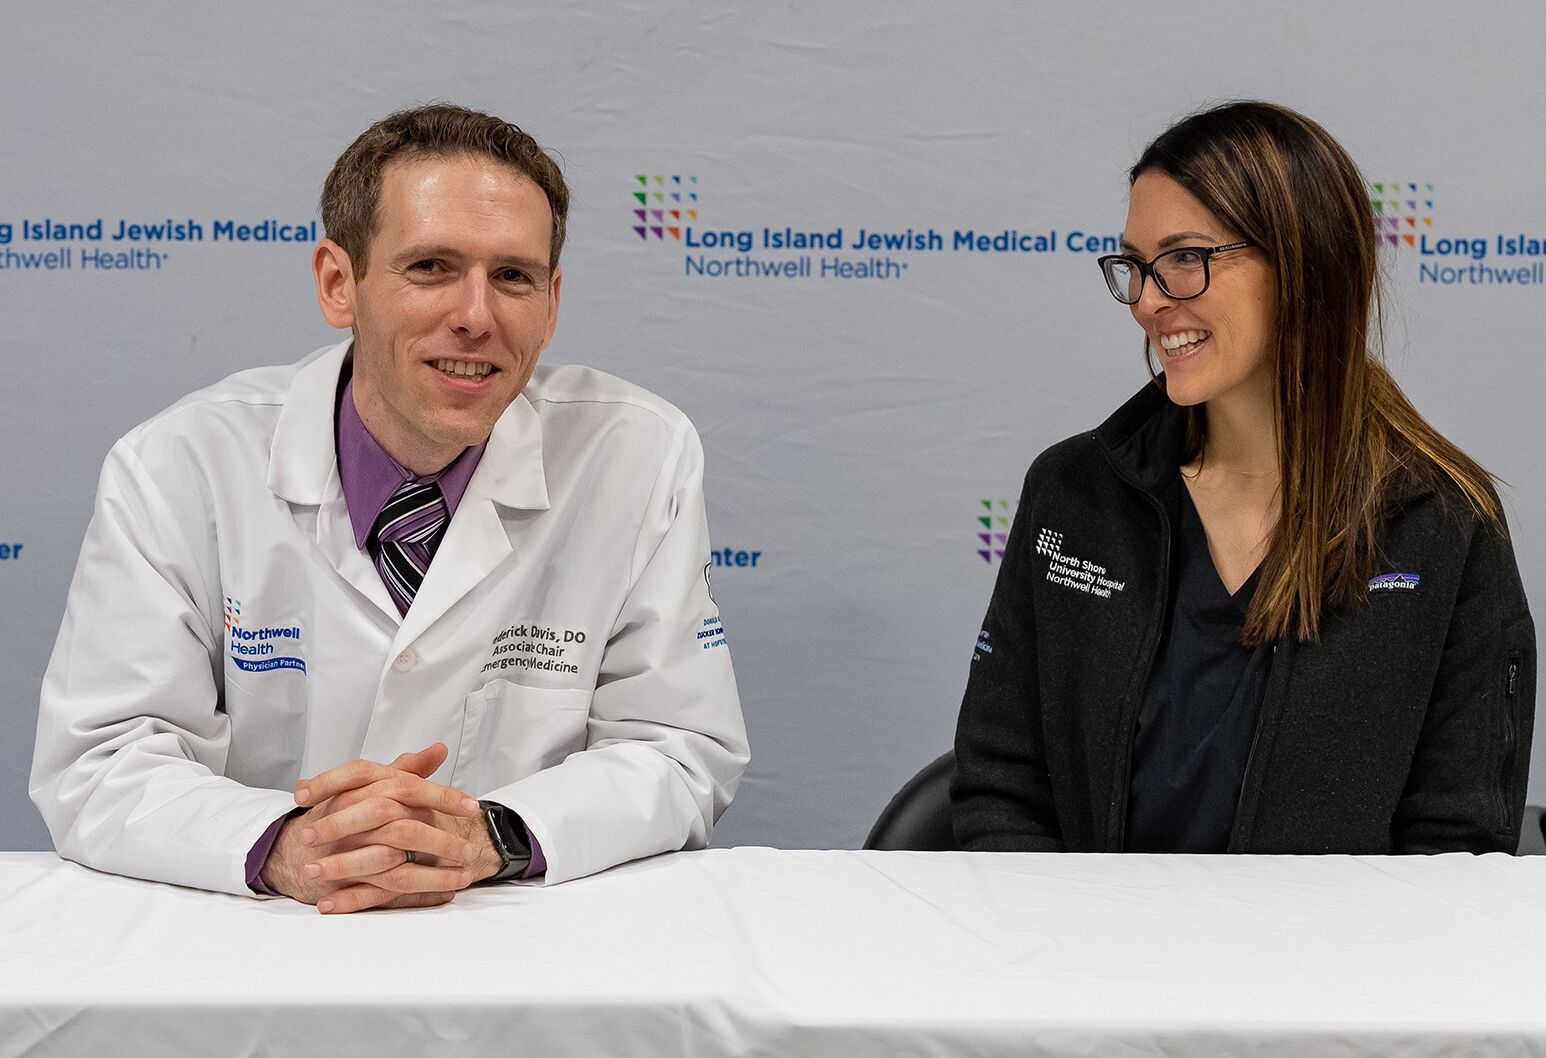 Dr Davis (left), Dr. Turrin discuss guarding against measles contamination during the holiday weekend get-togethers.